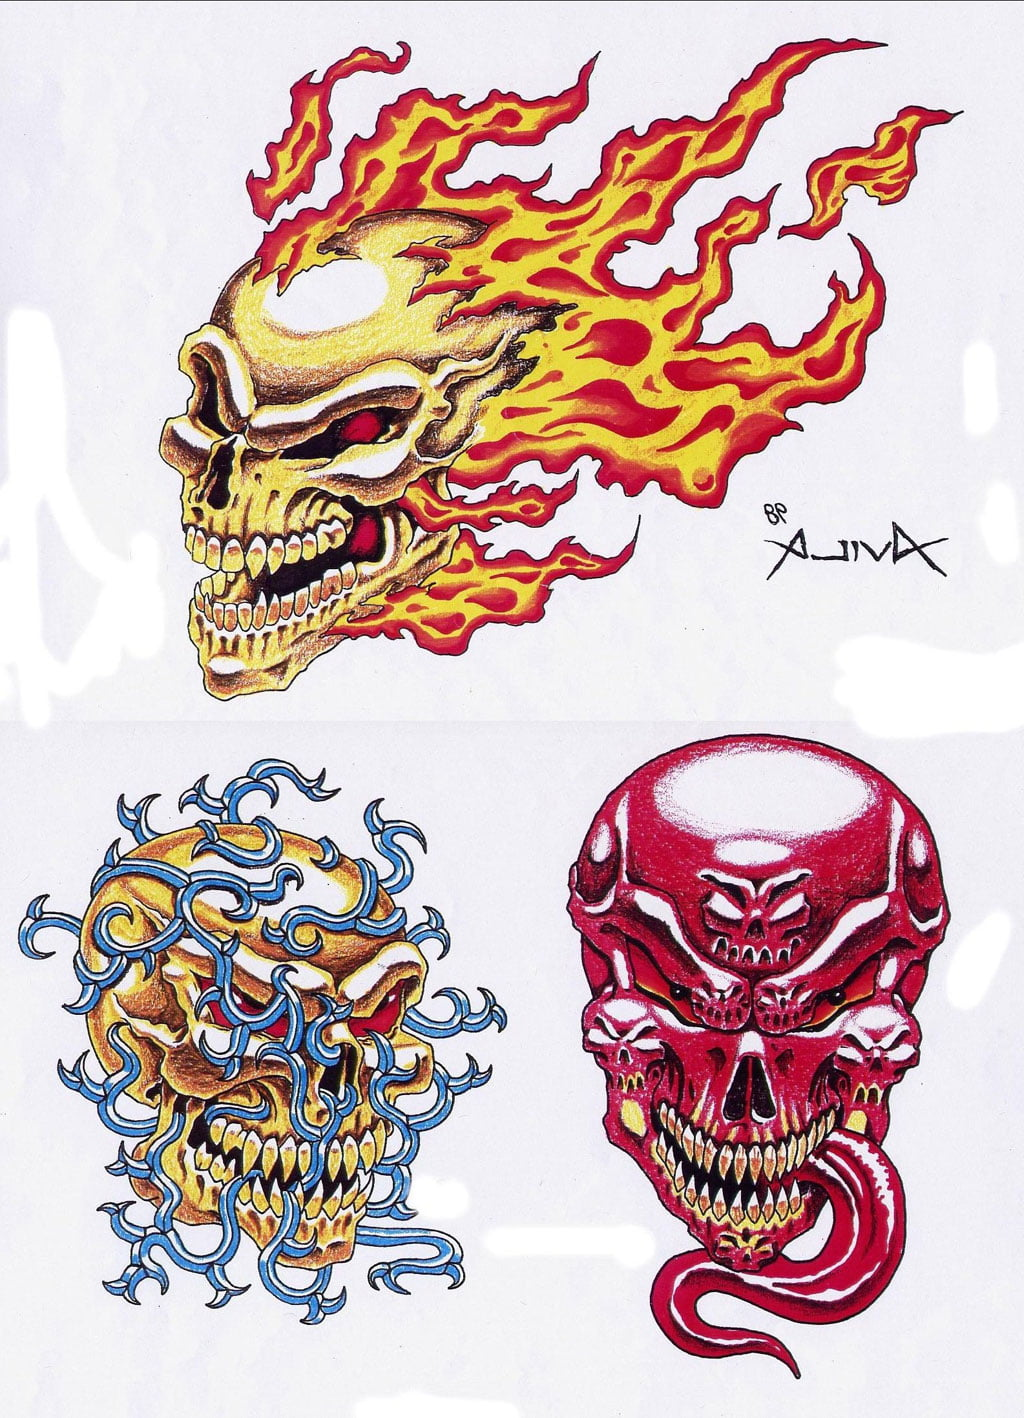 Free skull tattoo designs to print - Free Printable Skull Tattoo Designs